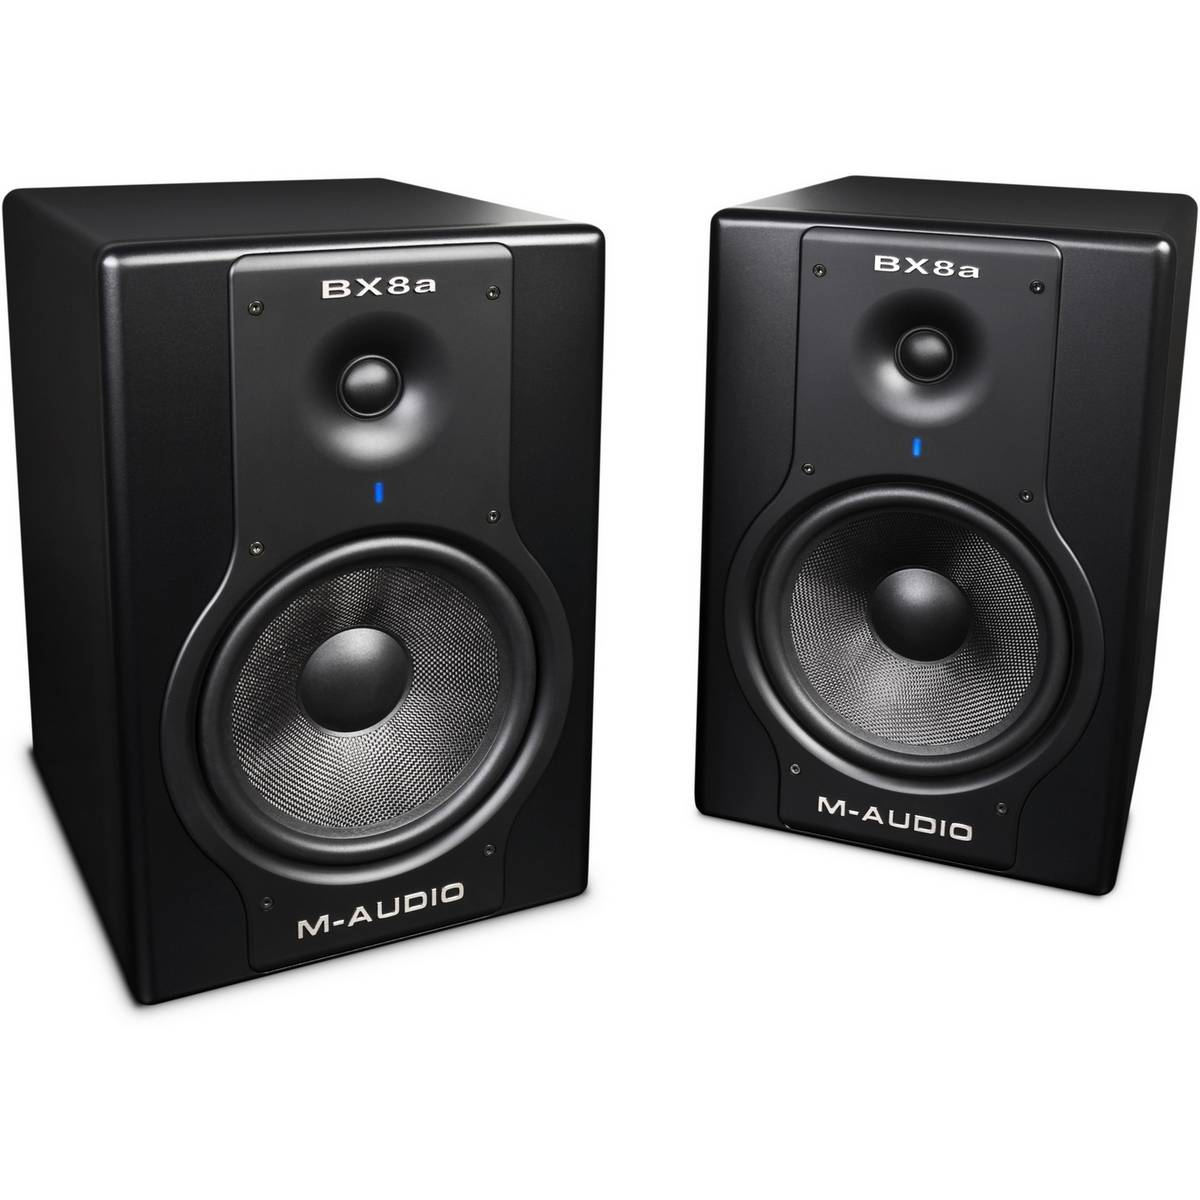 m audio studiophile bx8a deluxe studio monitors studio monitor speakers from inta audio uk. Black Bedroom Furniture Sets. Home Design Ideas